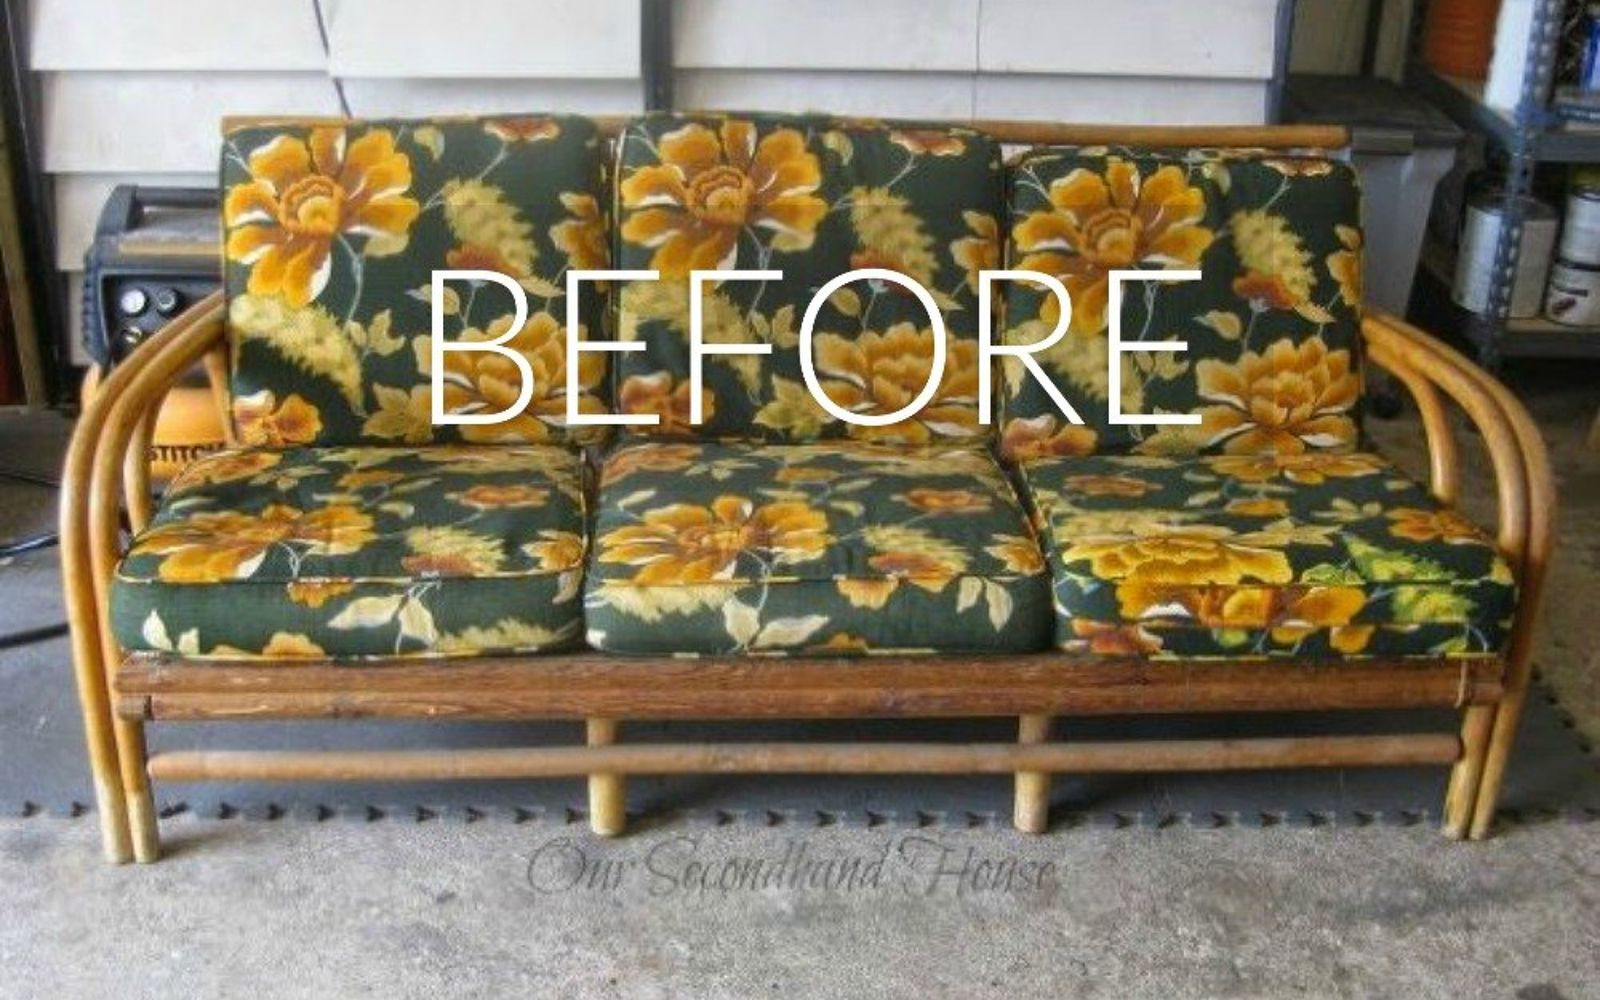 s hide your couch s wear and tear with these 9 ingenious ideas, painted furniture, Before A rotten retro rattan